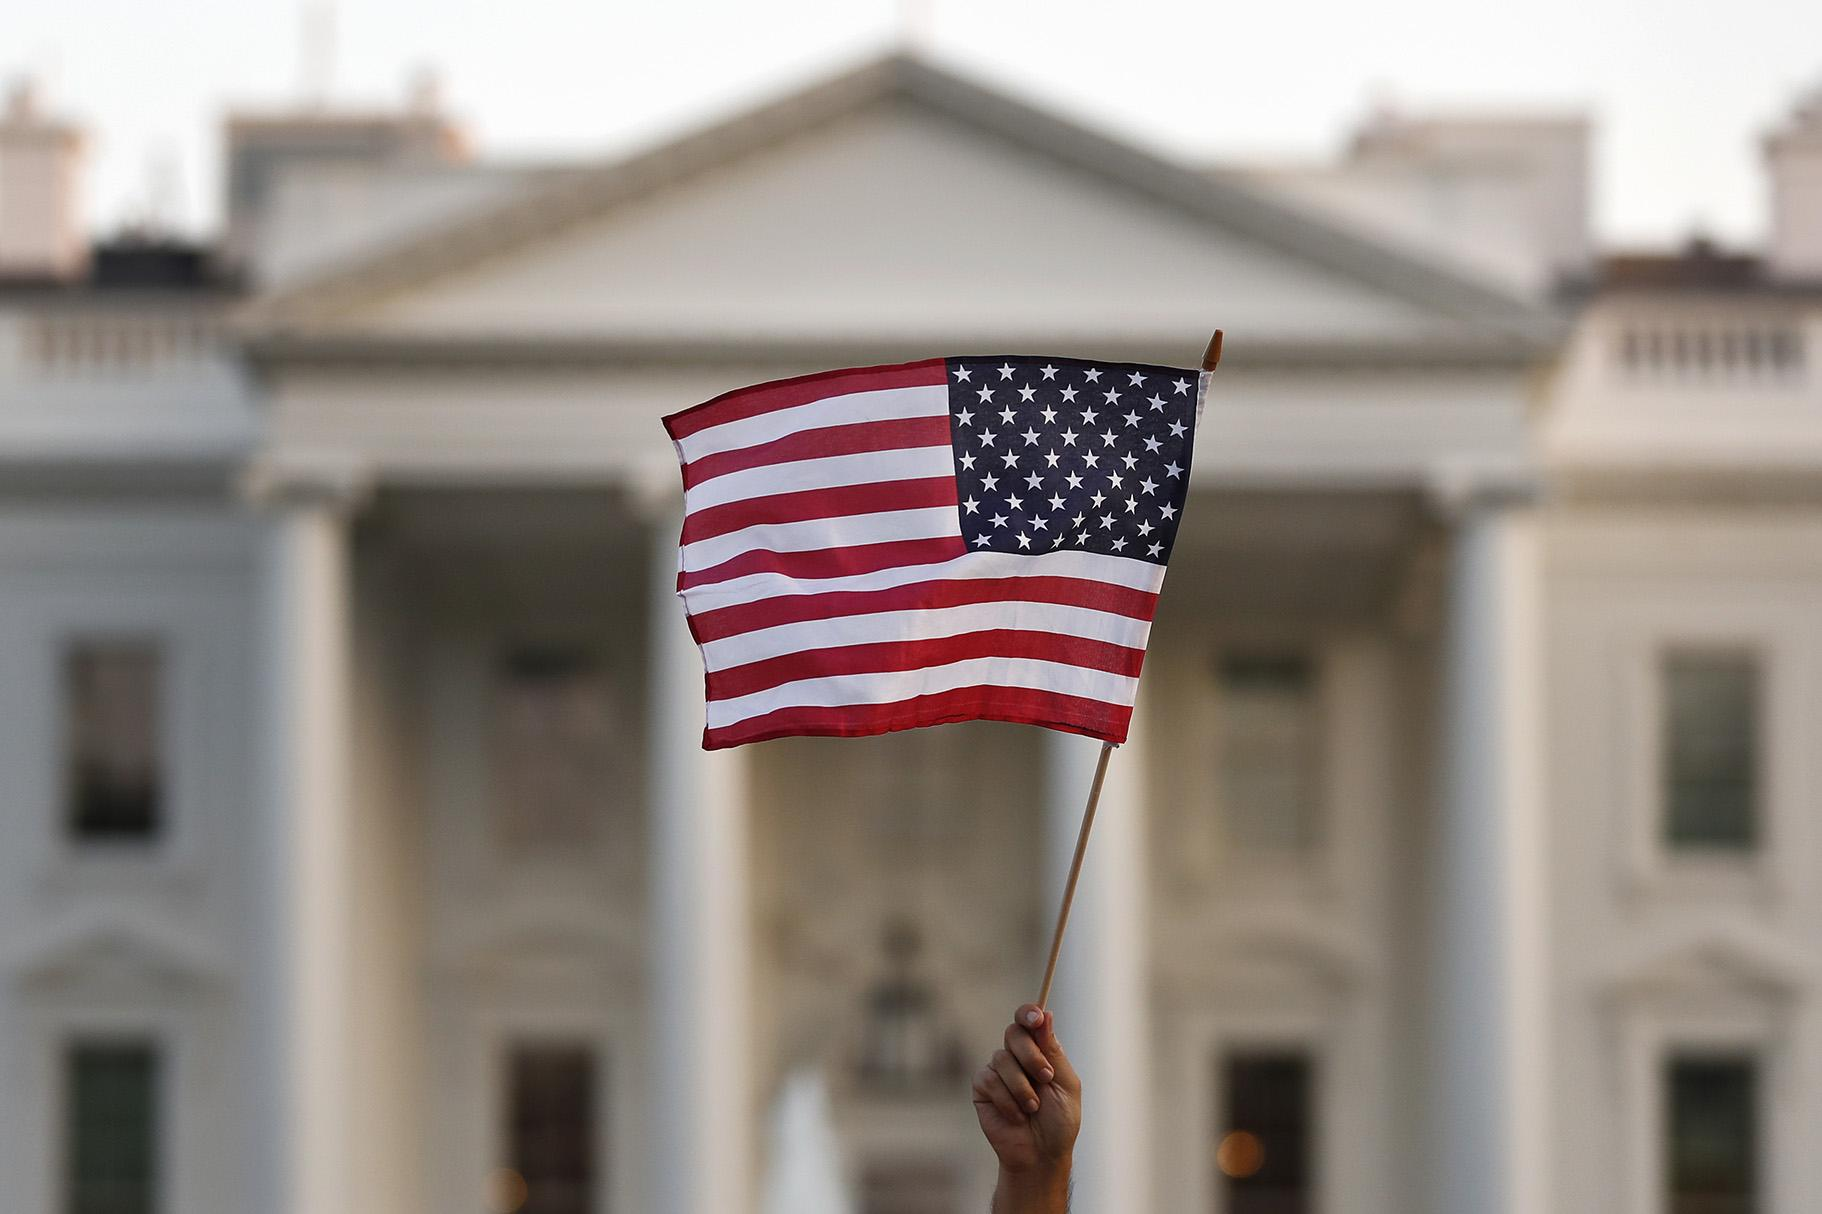 In this Sept. 2017 file photo, a flag is waved outside the White House, in Washington. (AP Photo / Carolyn Kaster)